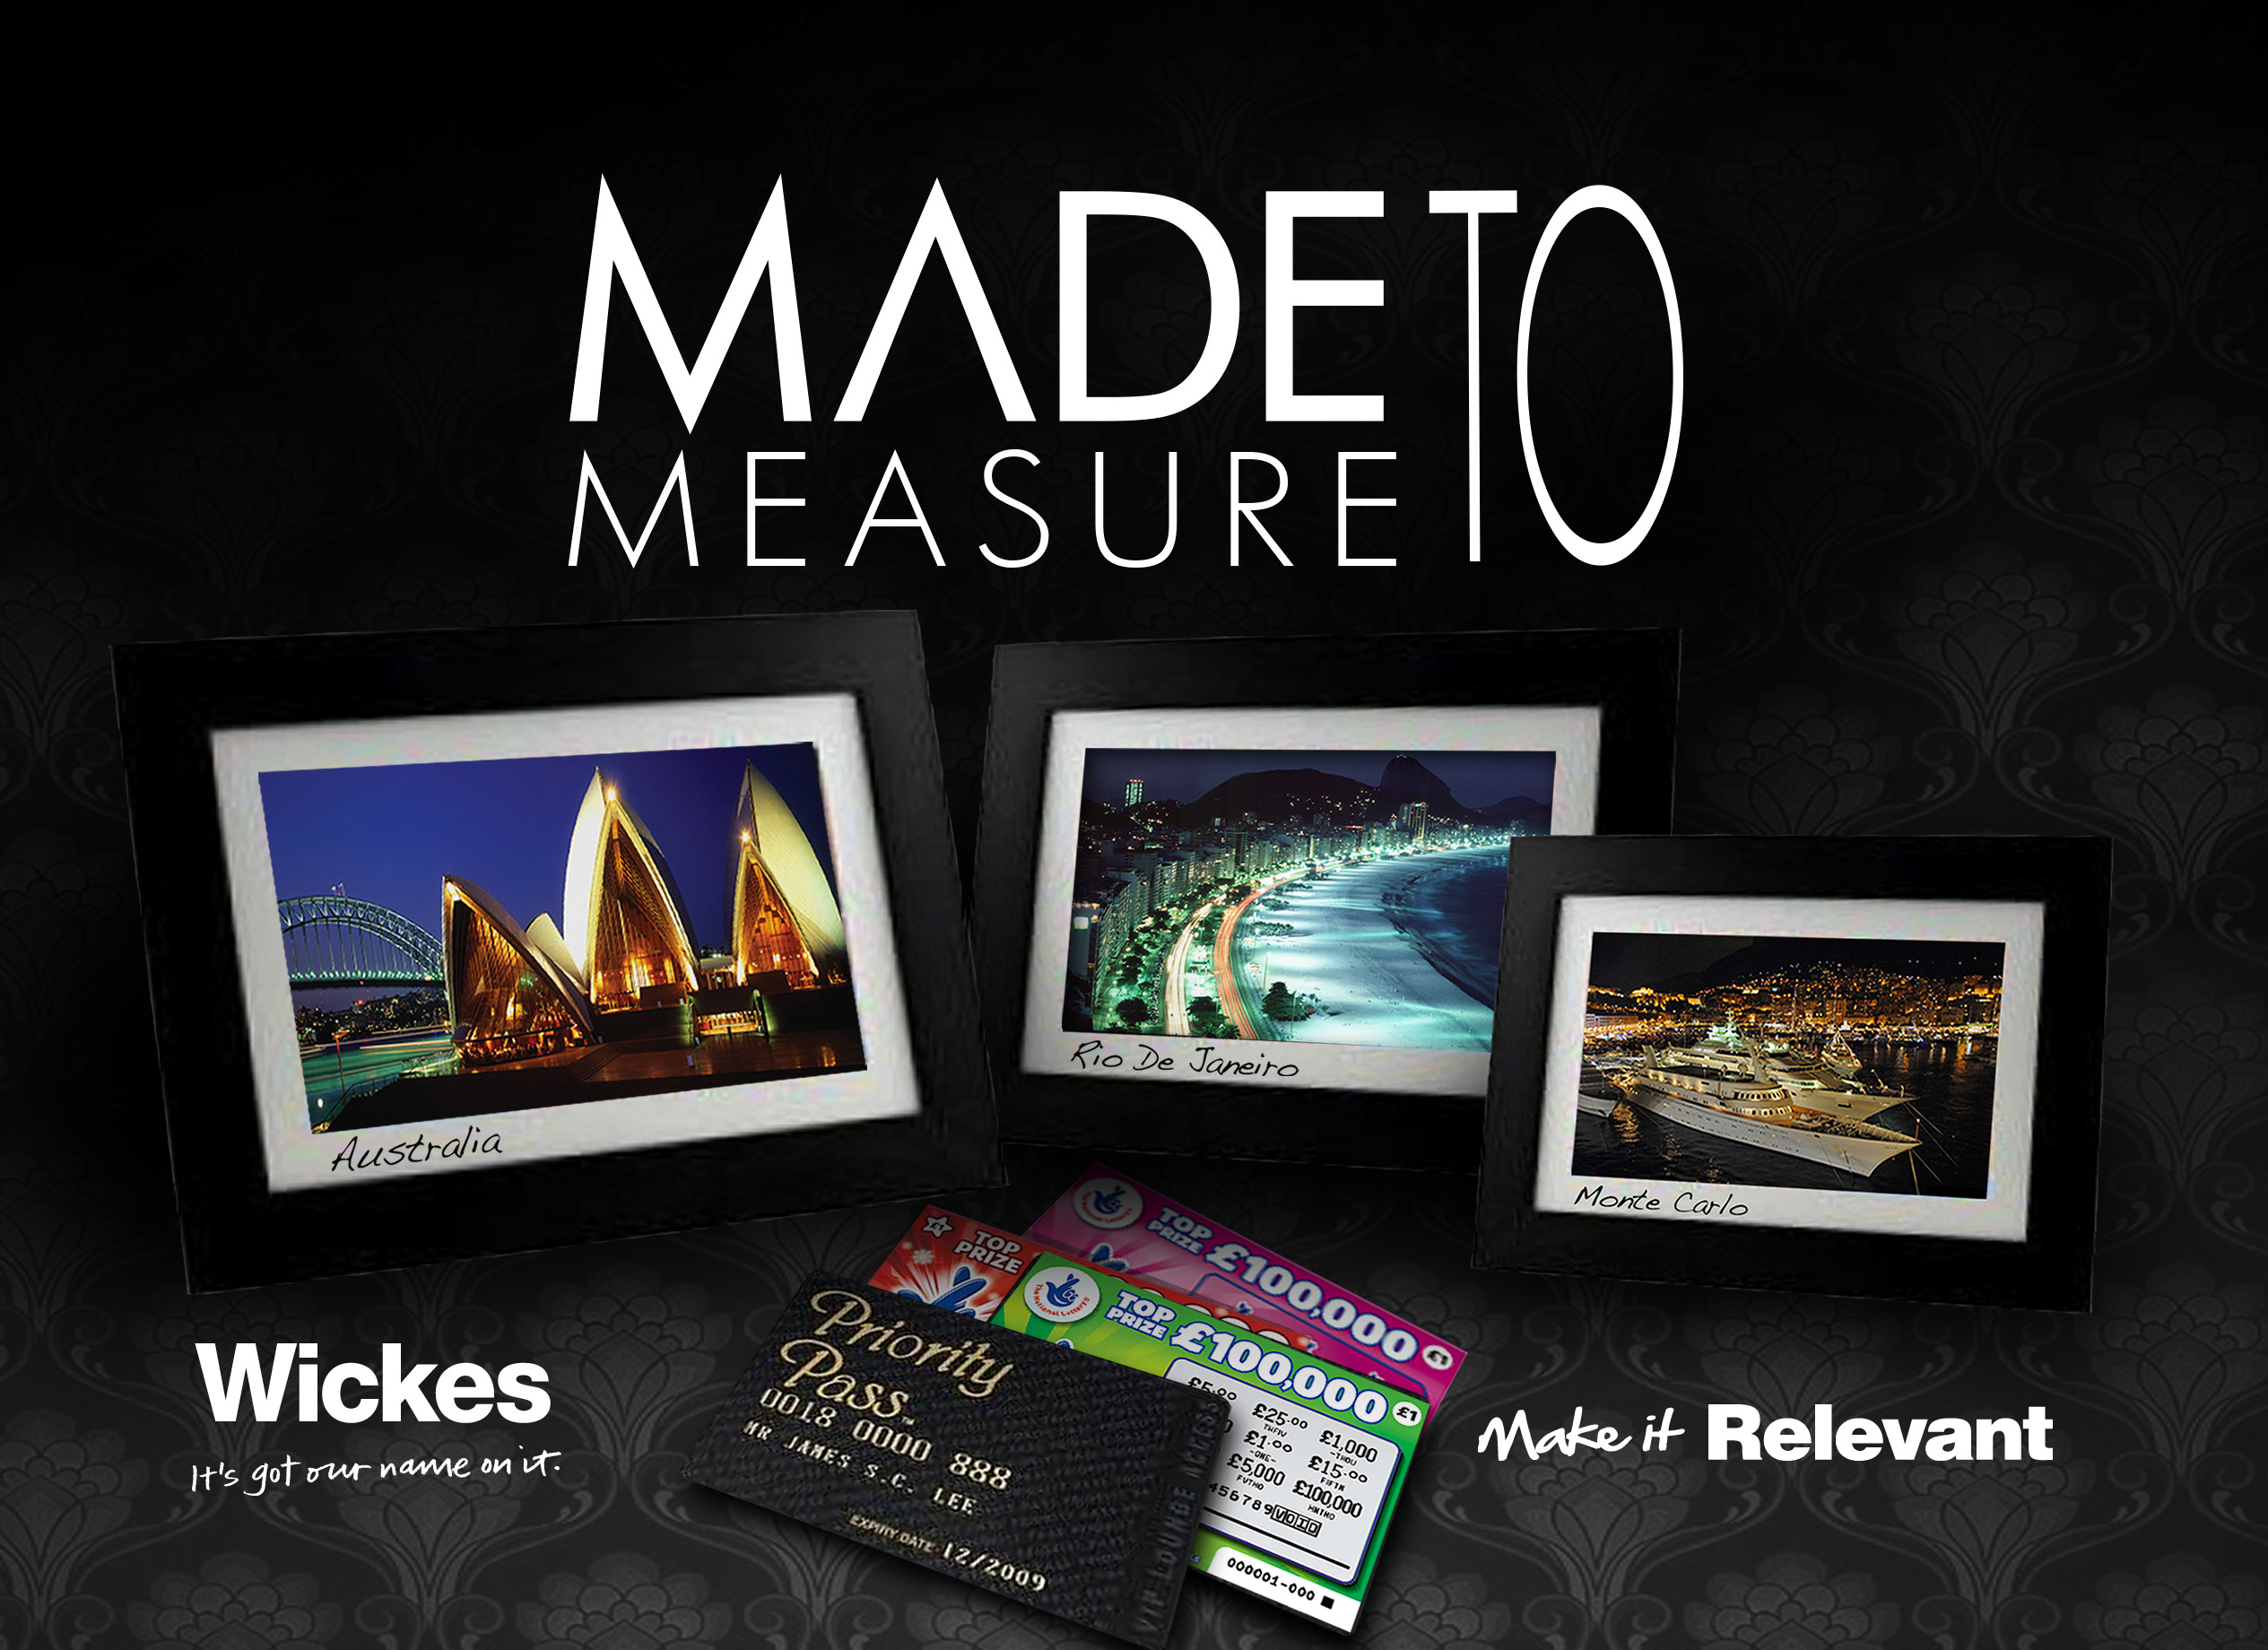 Wickes - Made to measure incentive